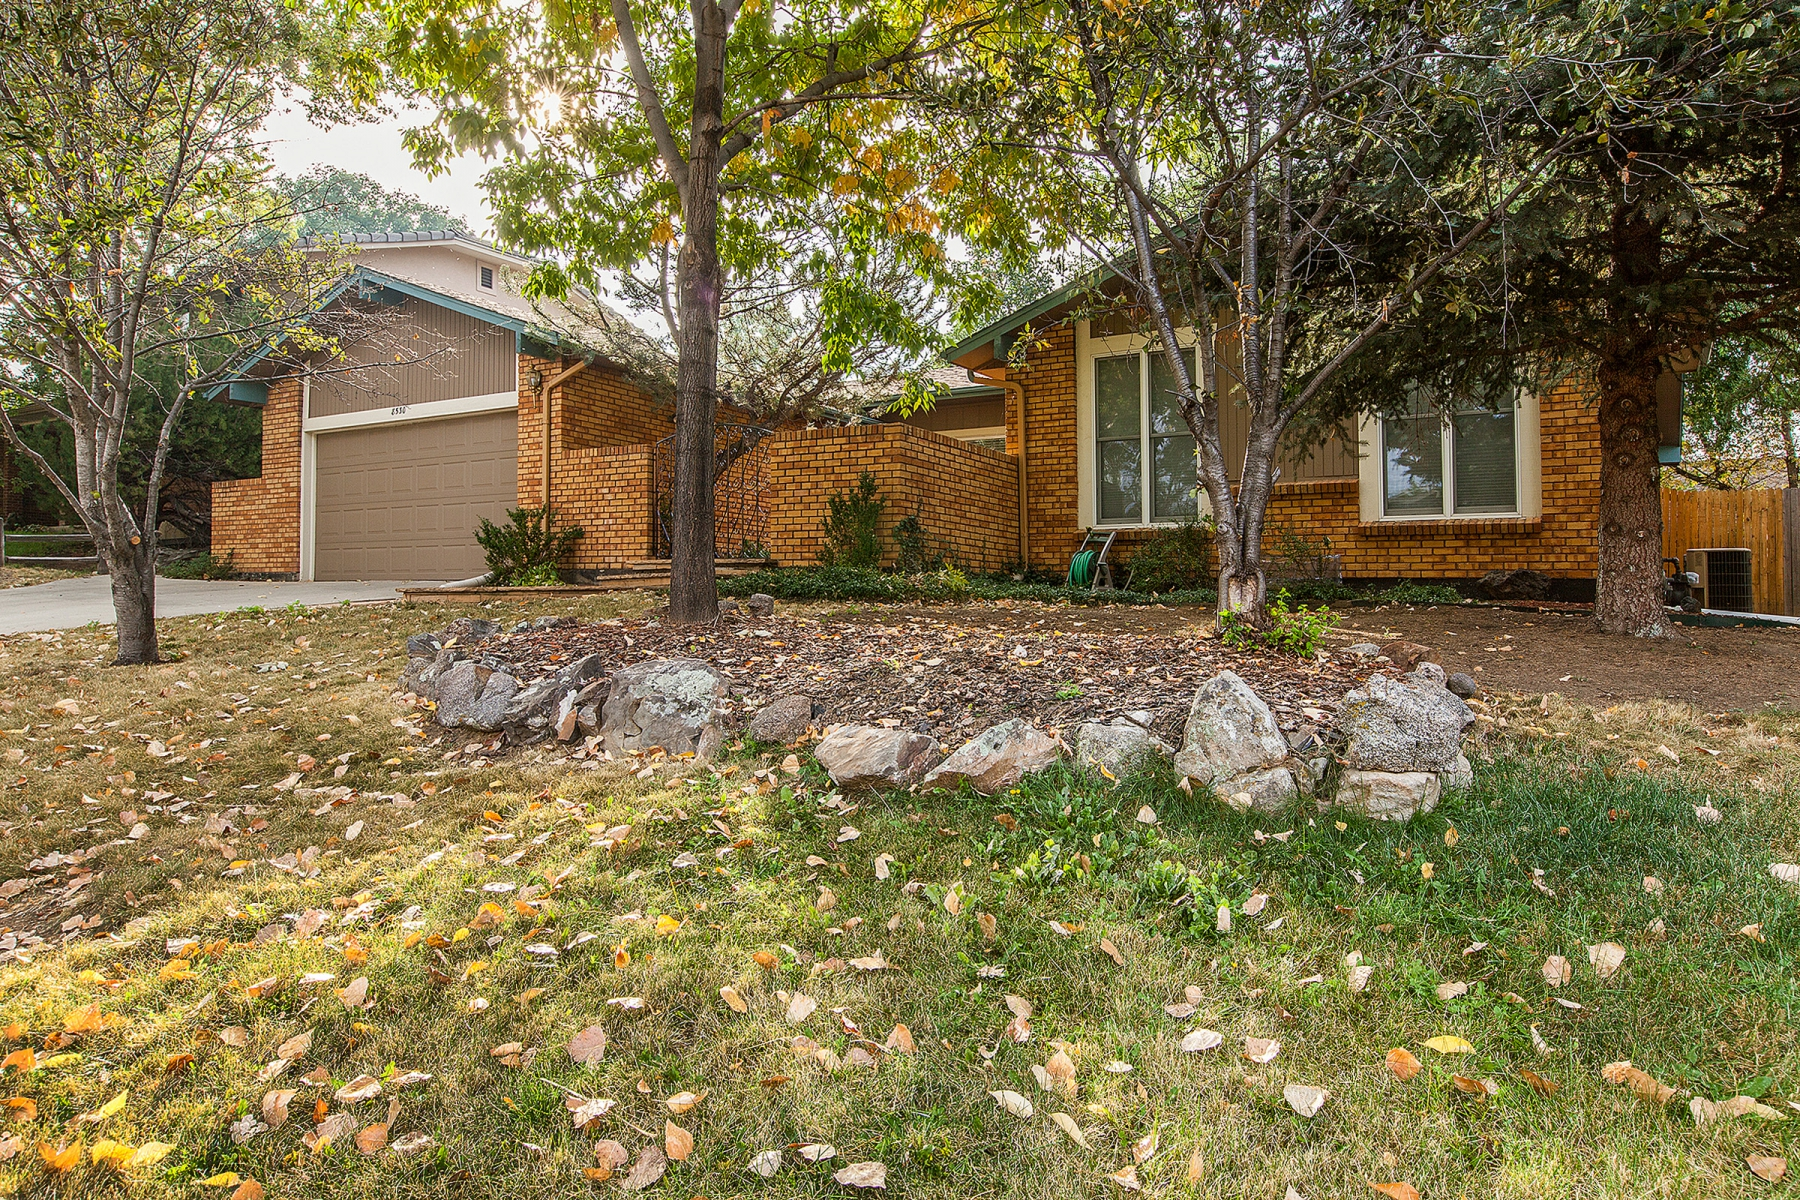 Single Family Home for Sale at Spectacular ranch in the heart of the DTC! 8530 East Chenango Avenue Denver, Colorado 80237 United States